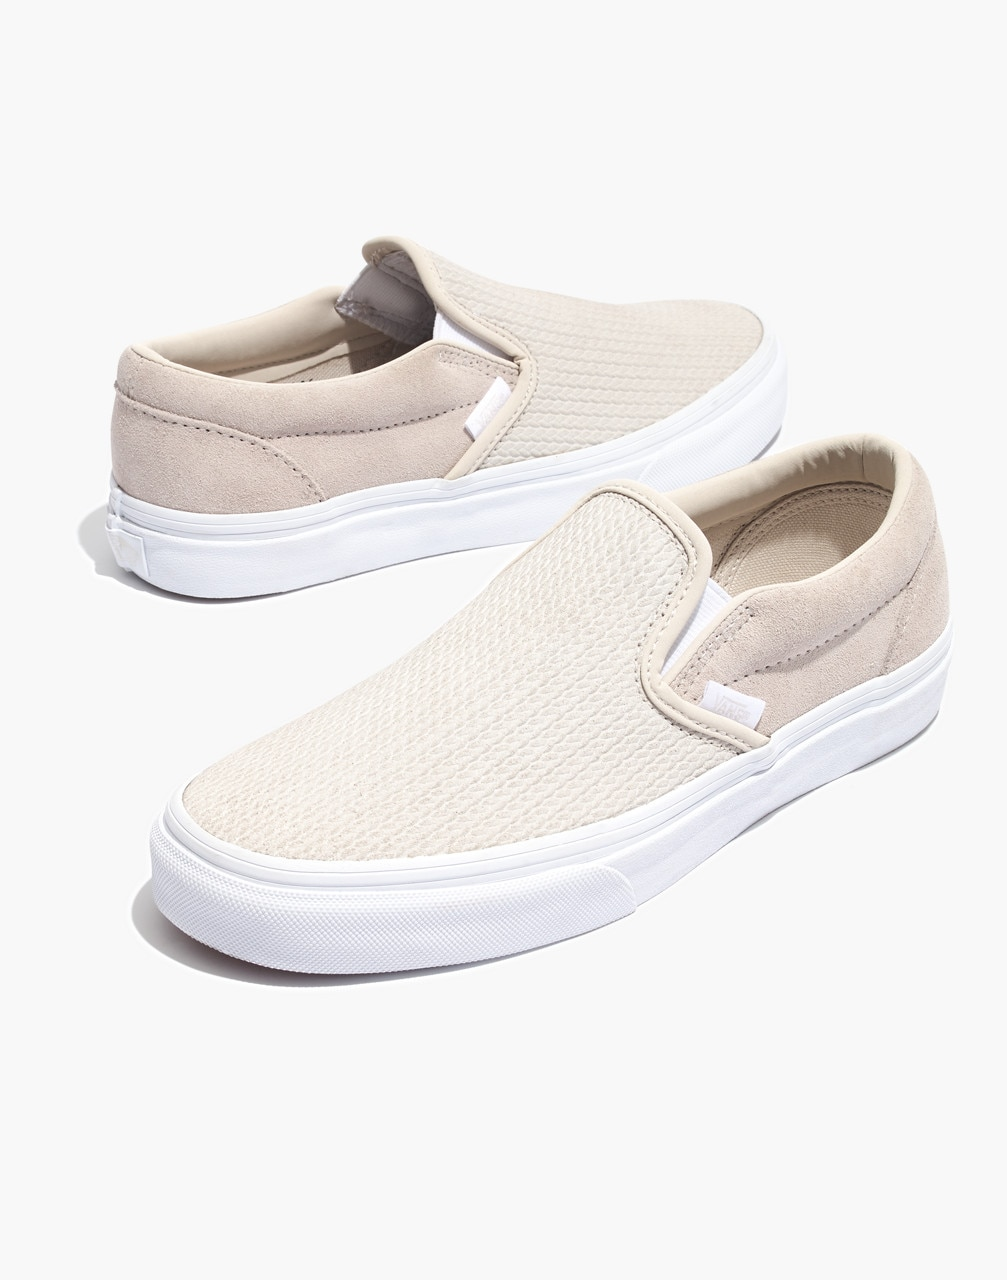 9d9828b739 Madewell Vans Unisex Classic Slip-On Sneakers in Moonbeam Suede